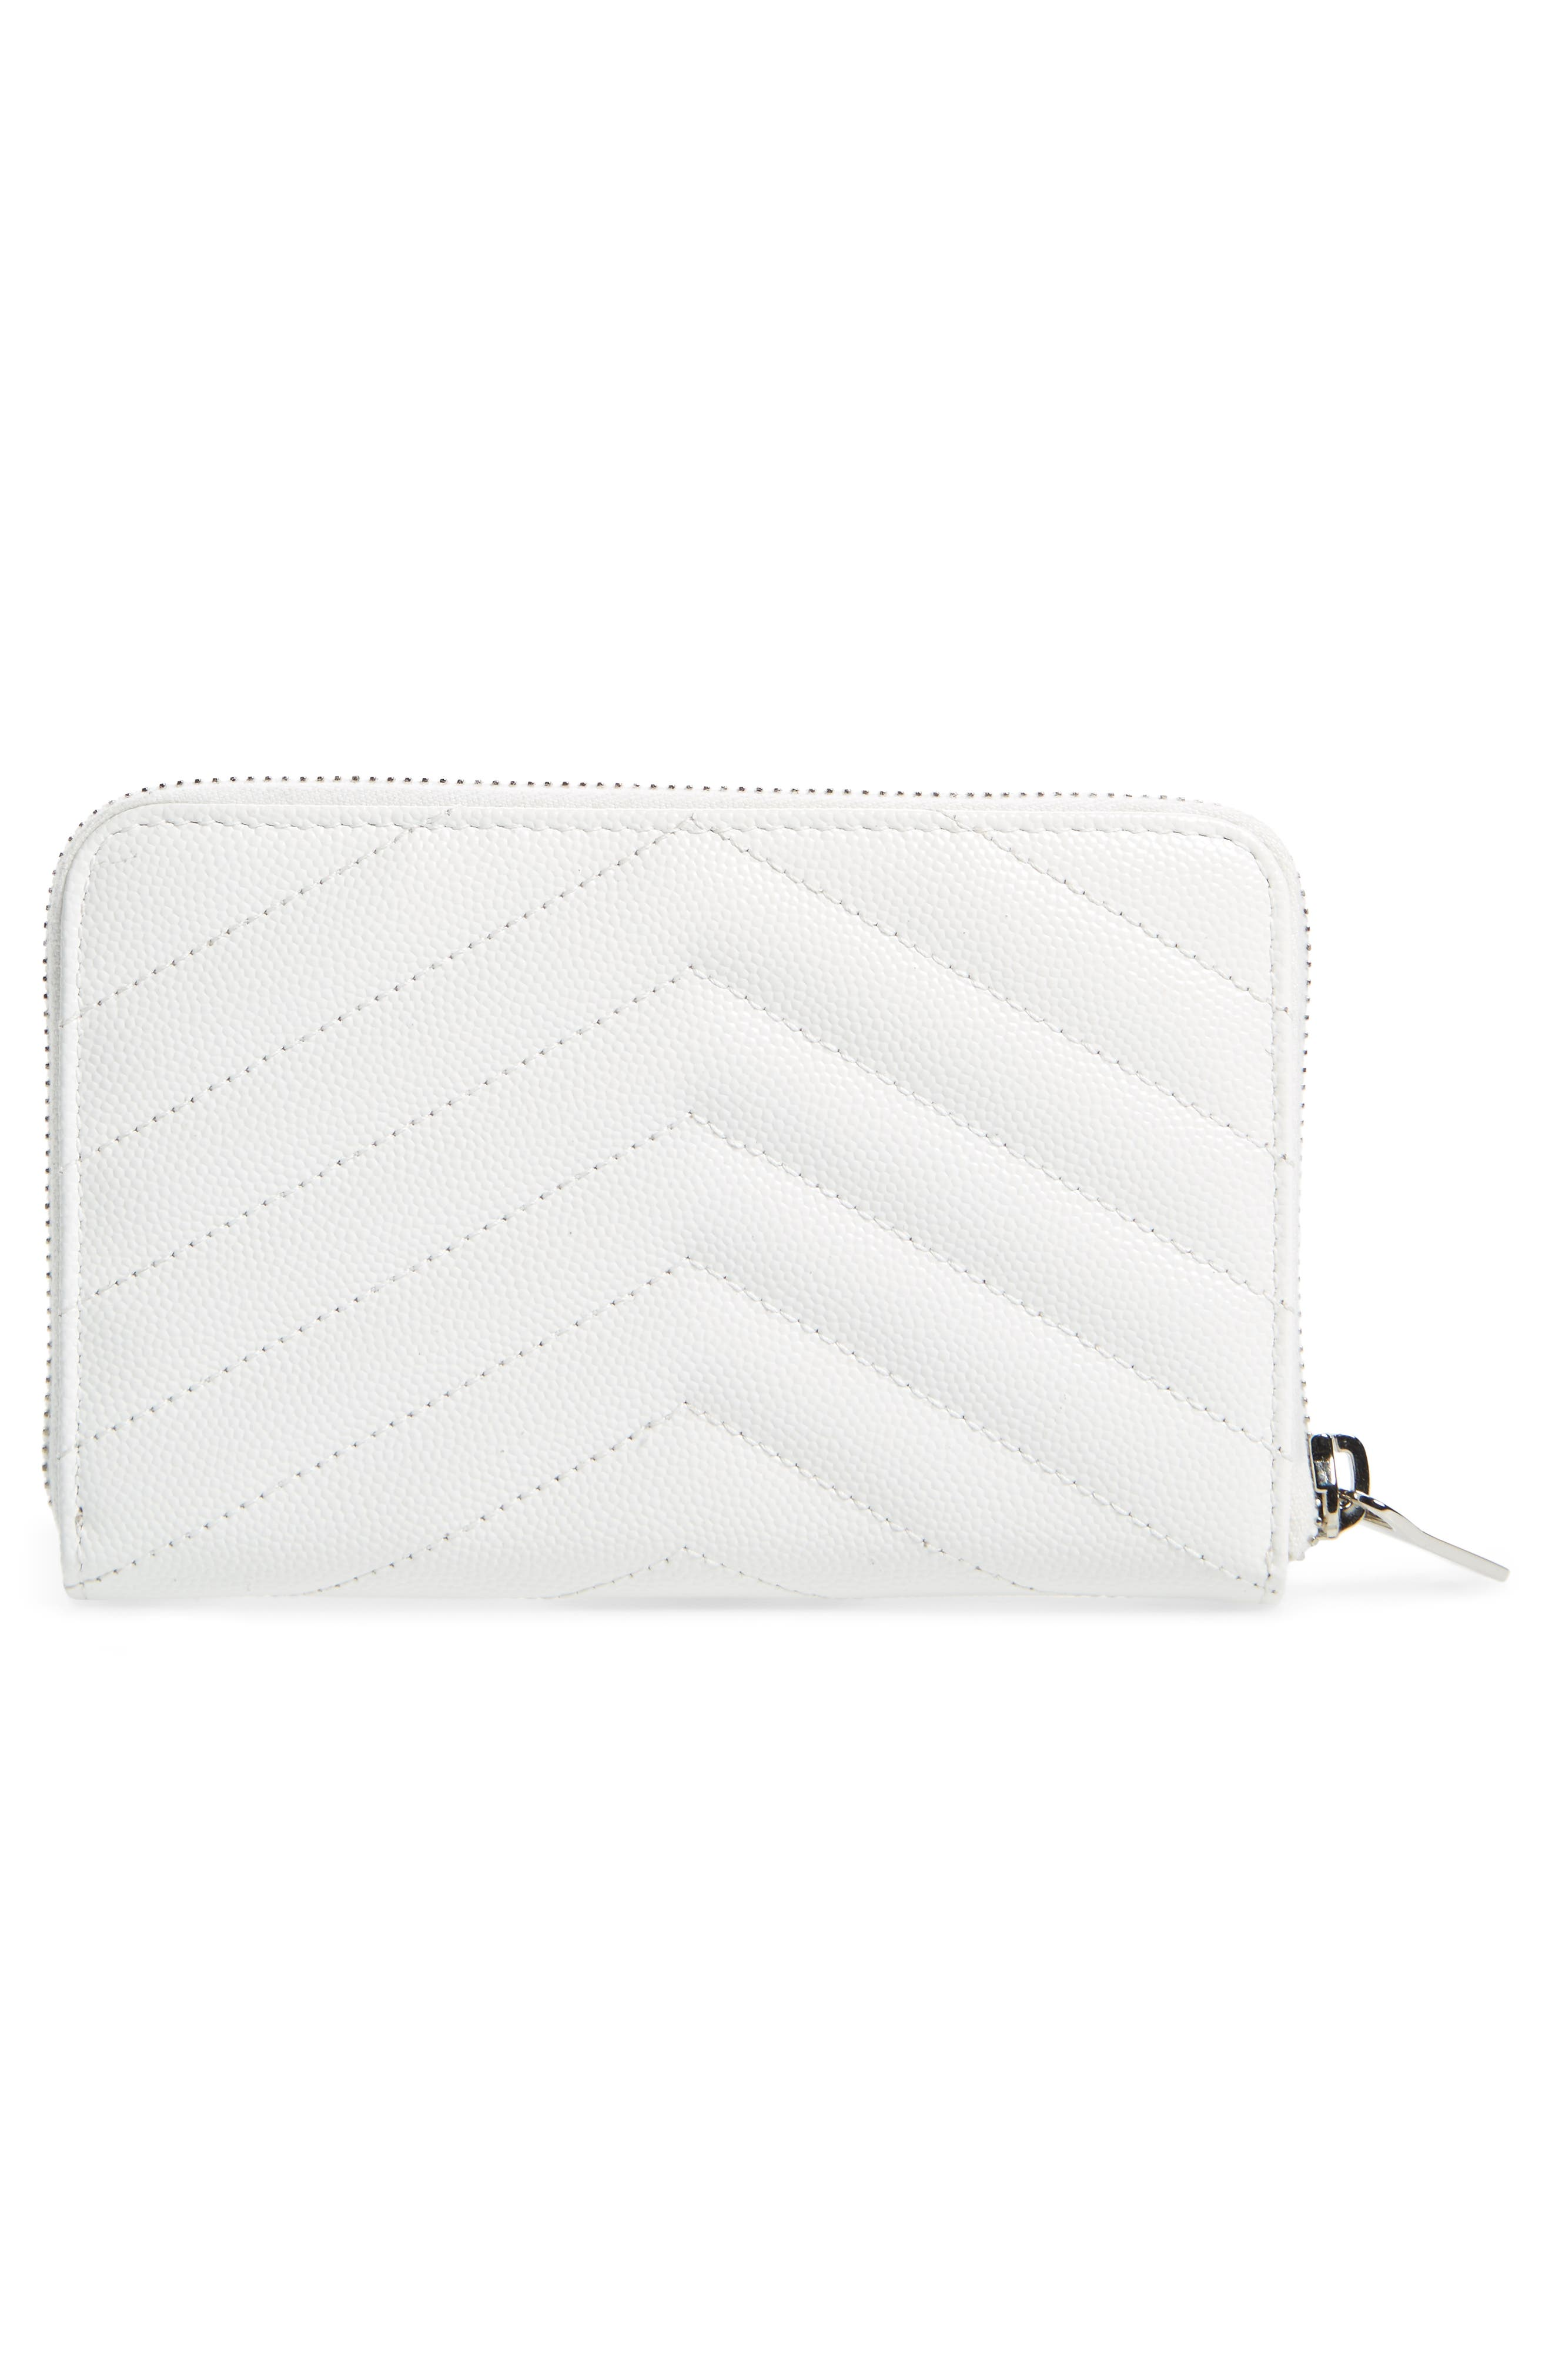 Small Grained Leather Zip Around Wallet,                             Alternate thumbnail 4, color,                             OPTIC WHITE